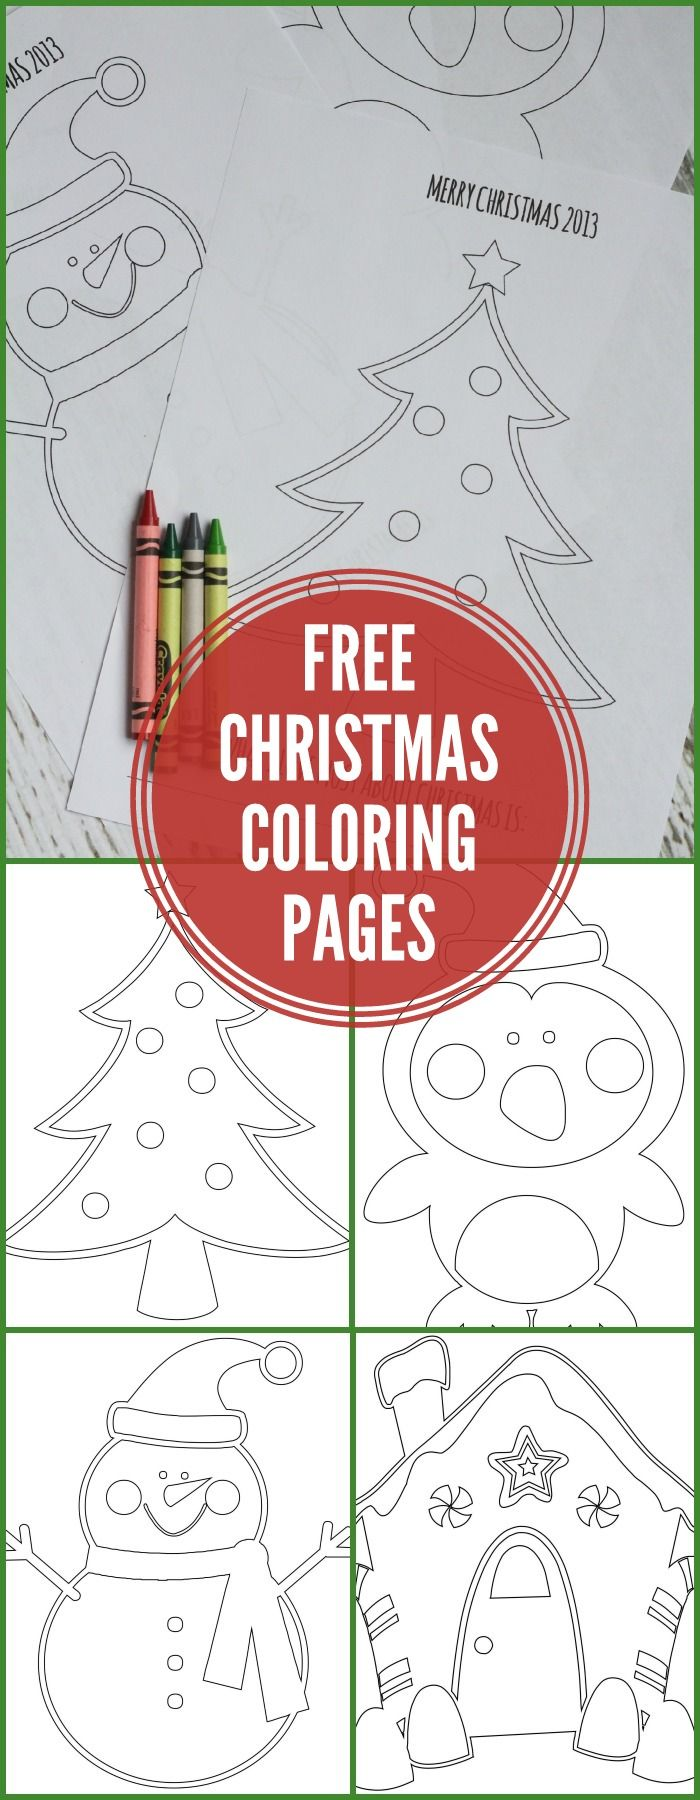 FREE Christmas Coloring Pages on { lilluna.com }